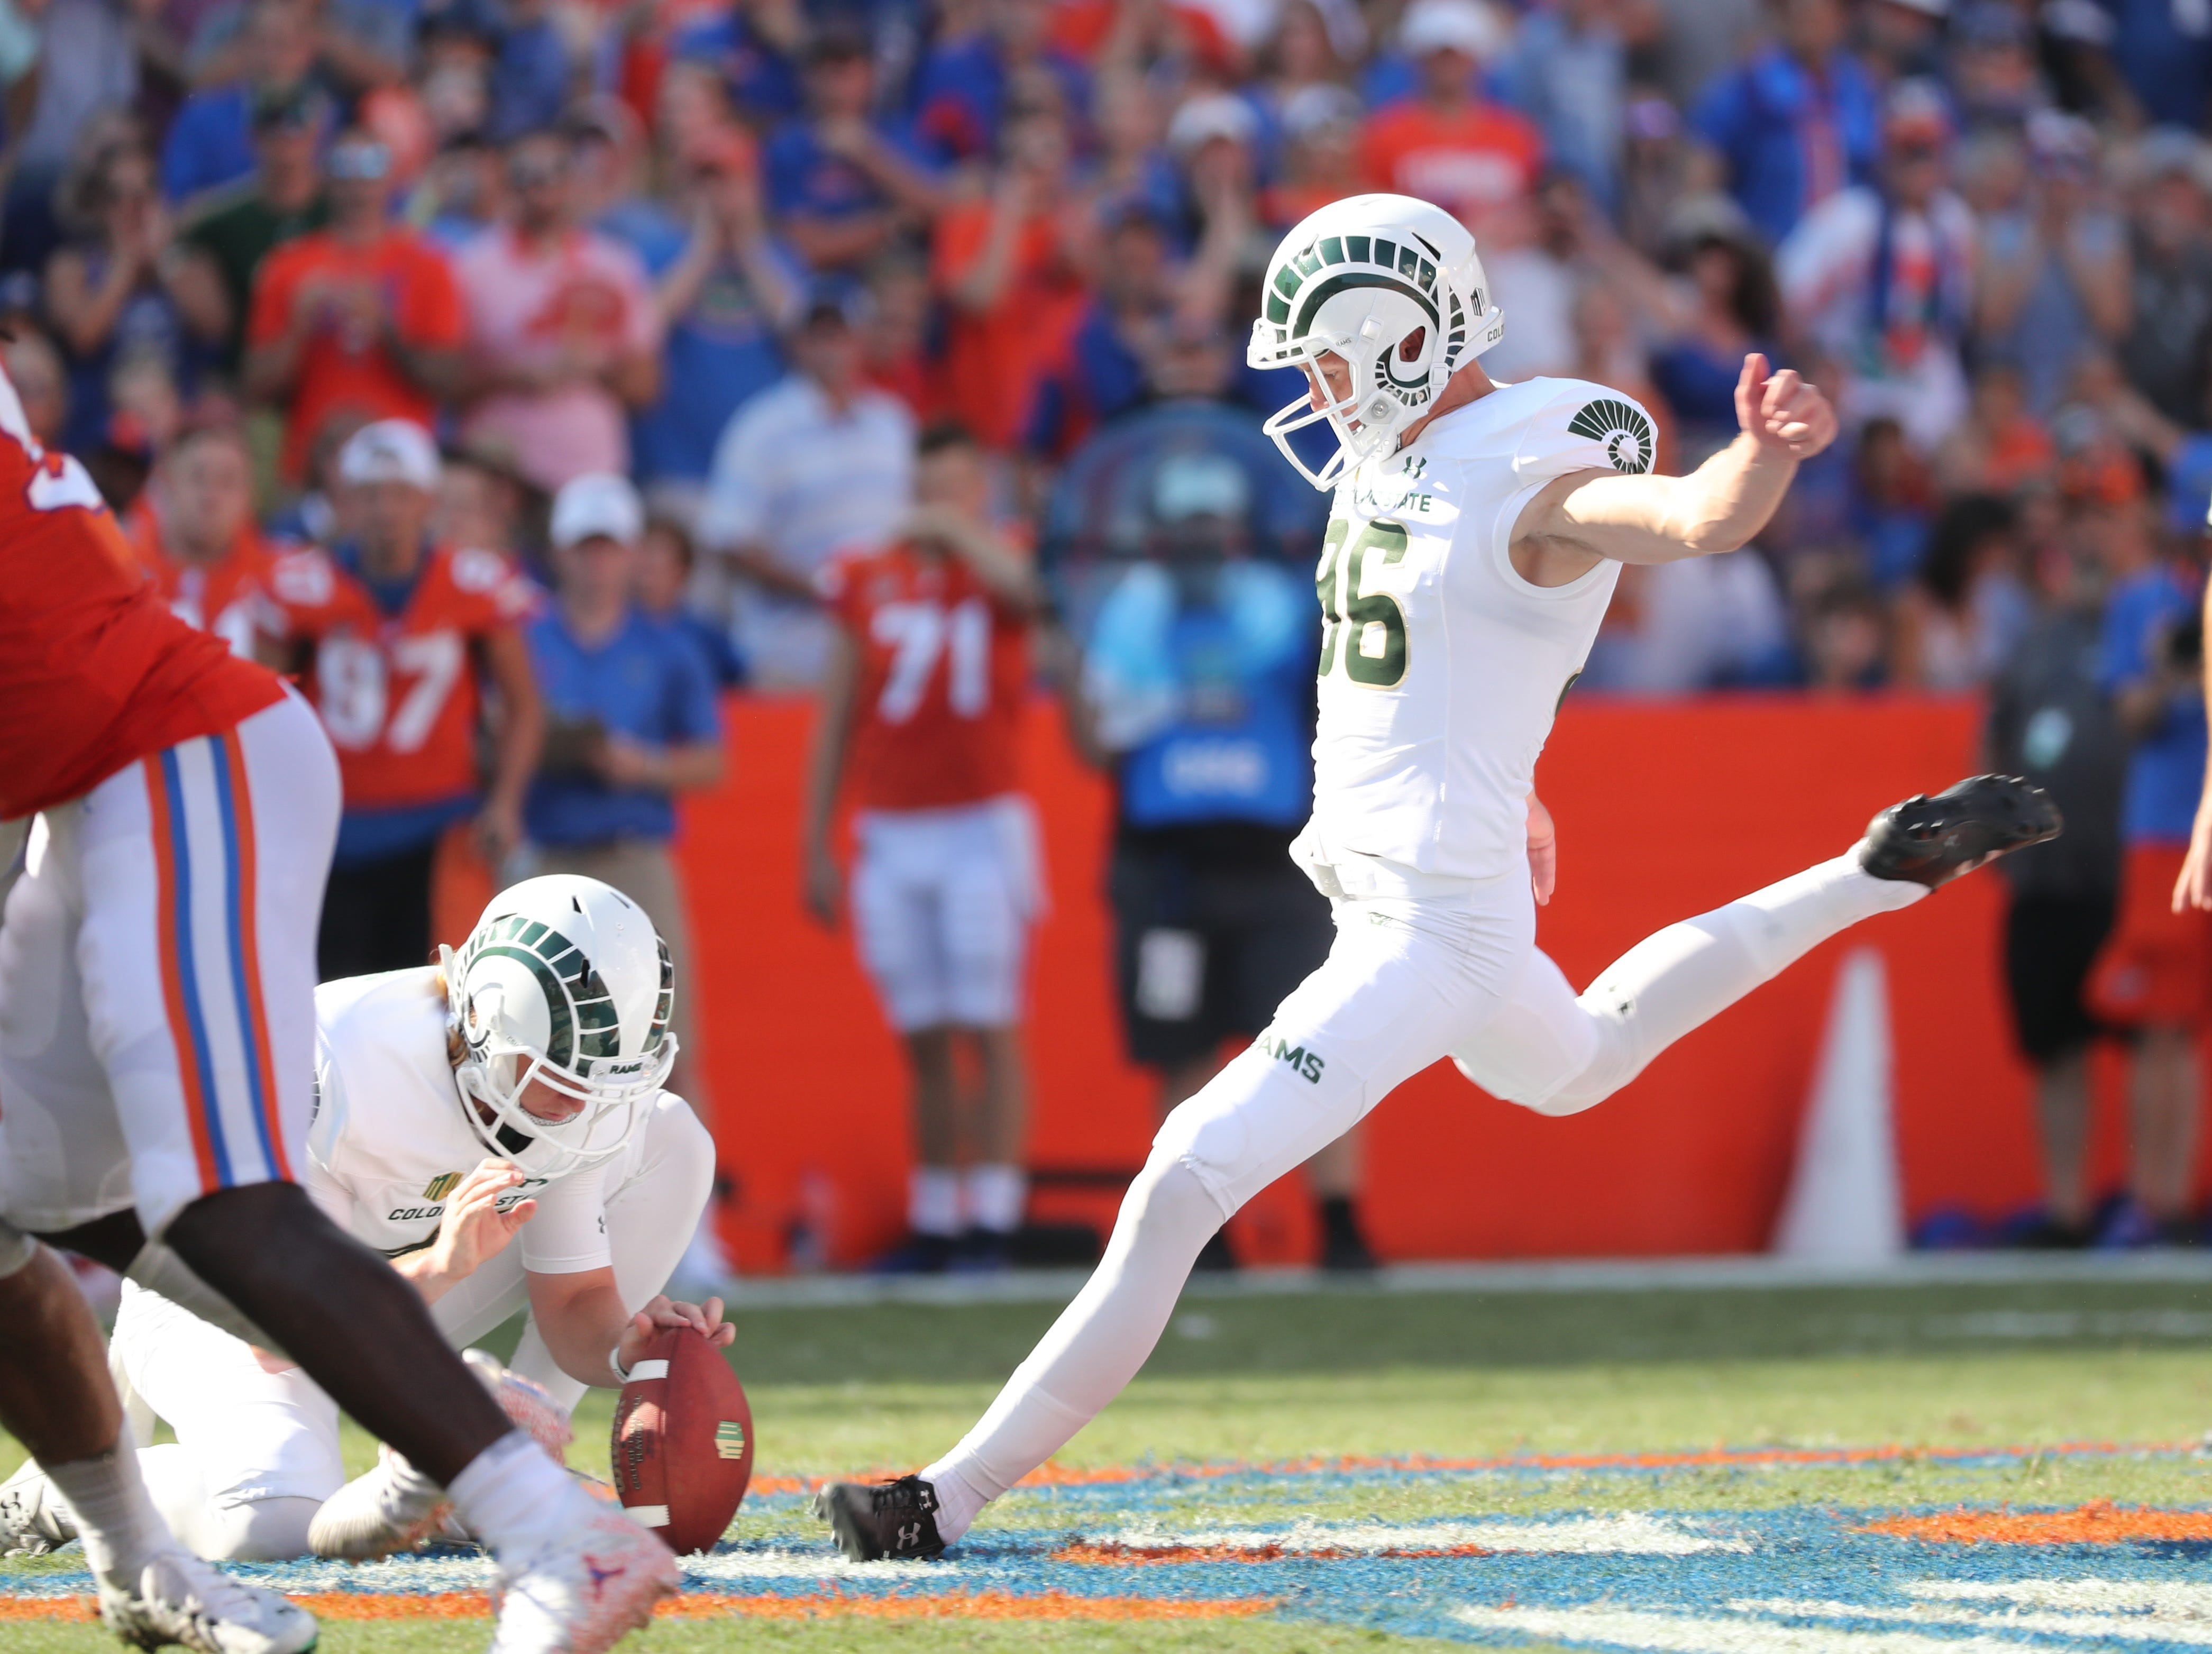 Sep 15, 2018; Gainesville, FL, USA; Colorado State Rams place kicker Wyatt Bryan (96) misses a 53 yard field goal during the second quarter against the Florida Gators at Ben Hill Griffin Stadium. Mandatory Credit: Kim Klement-USA TODAY Sports